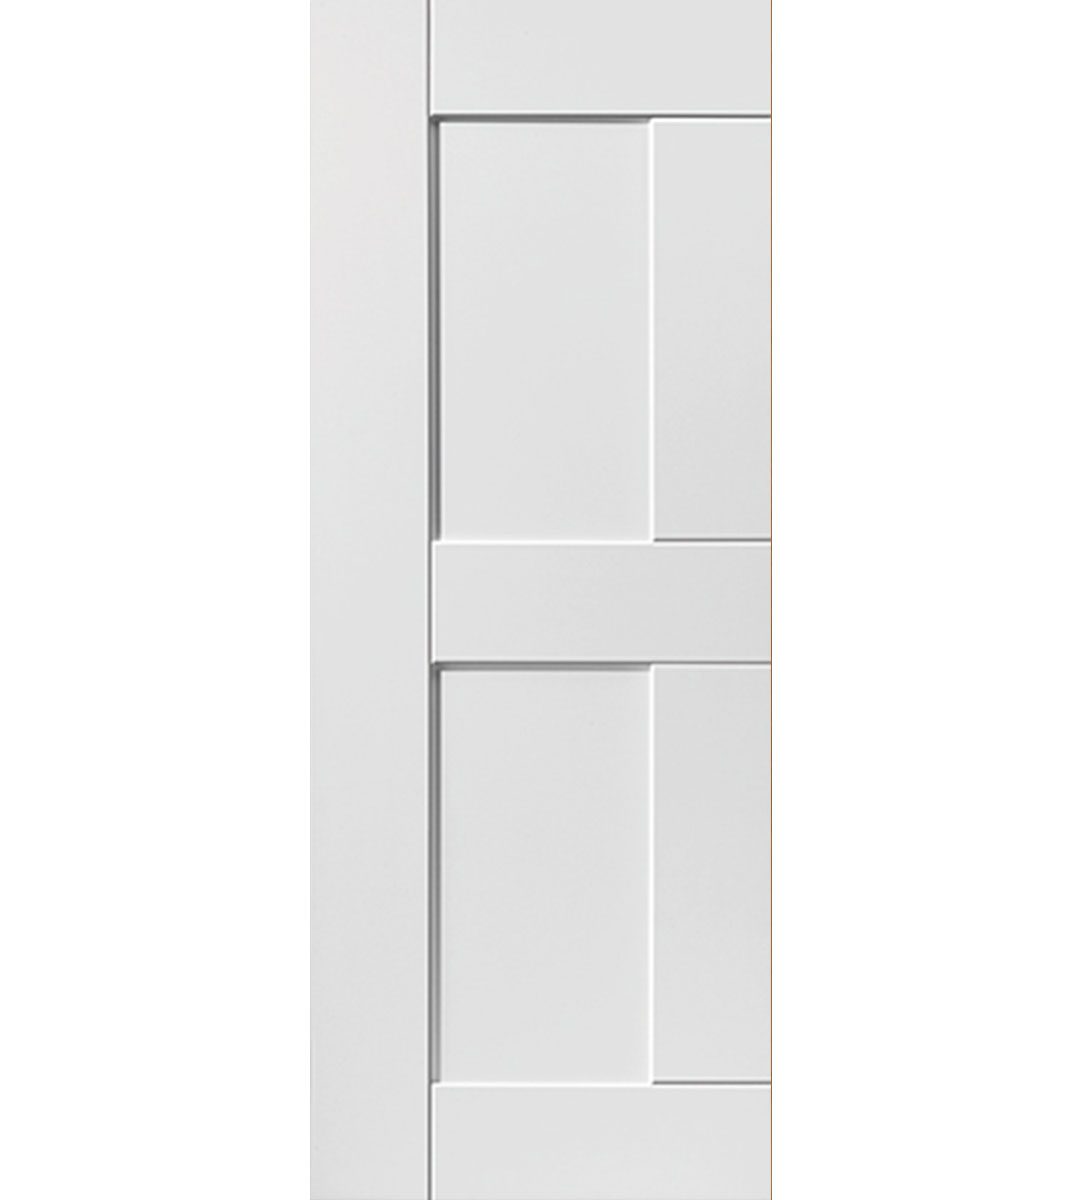 eccentro white interior door